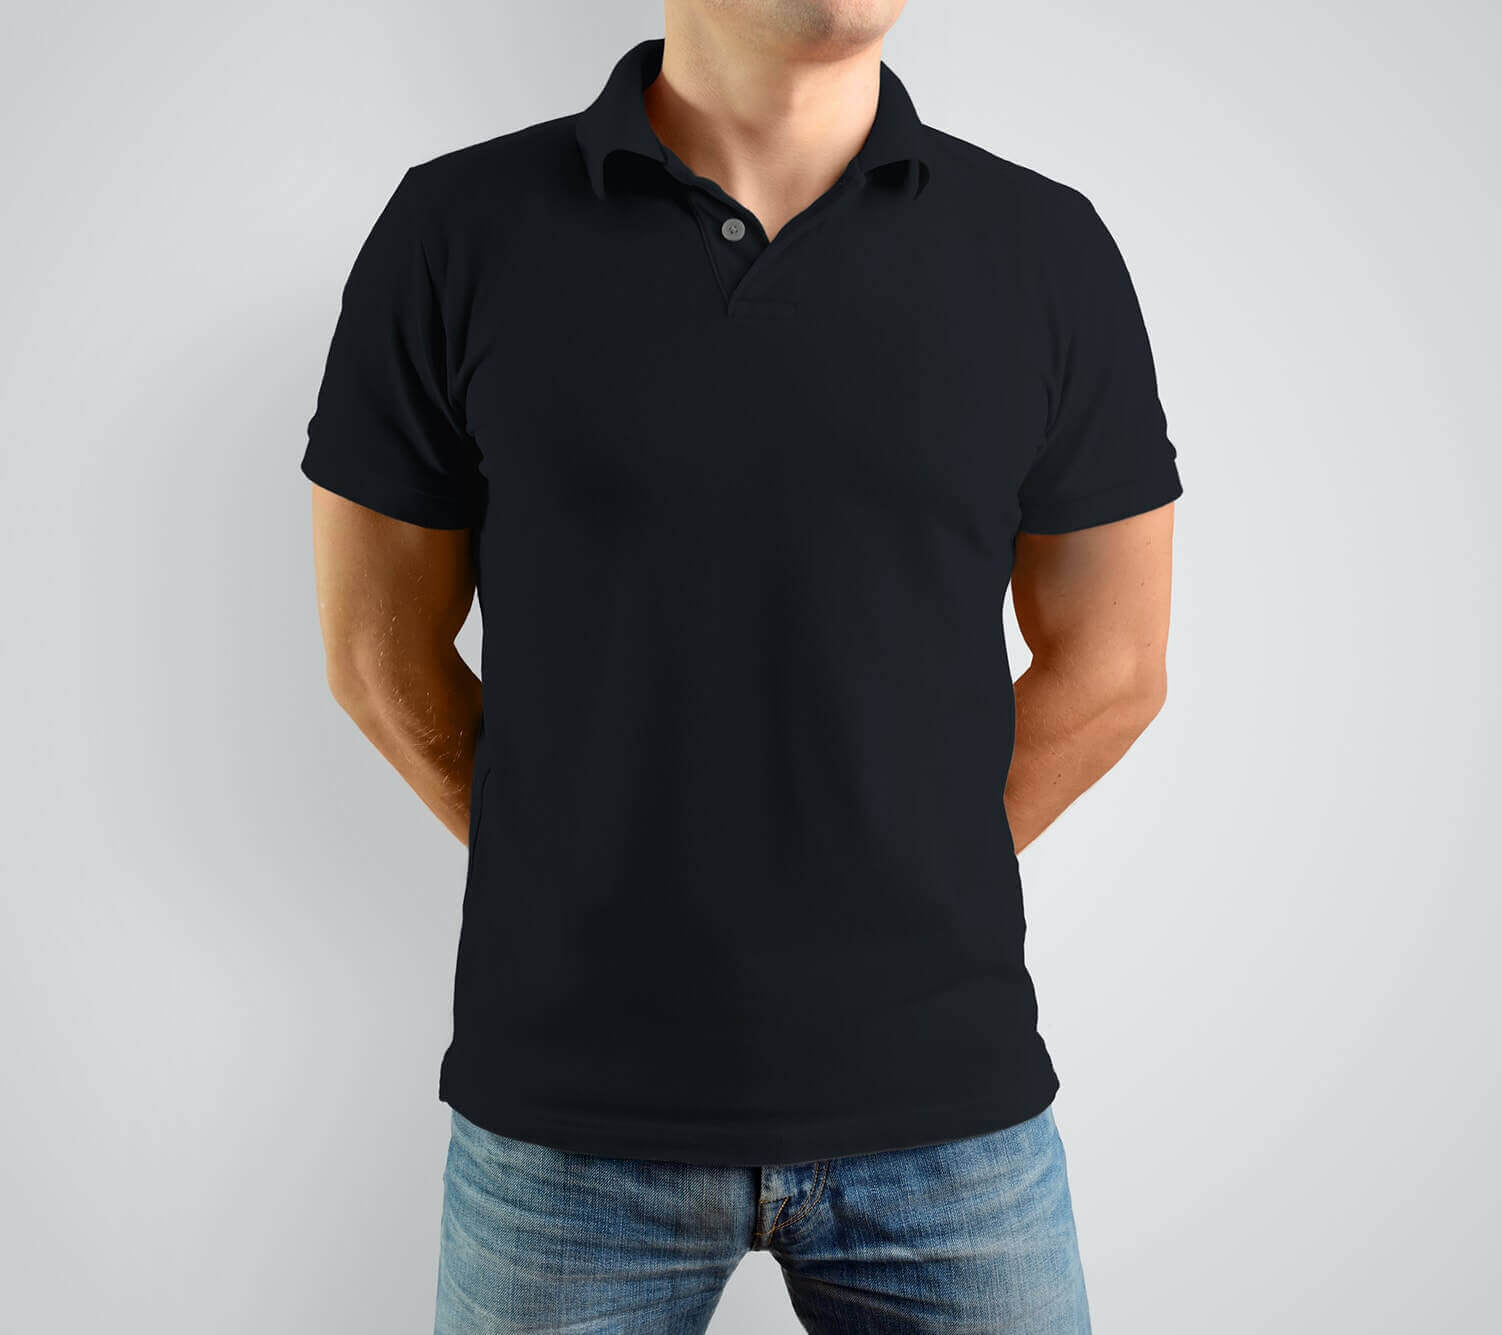 Polo T-shirt Design Software